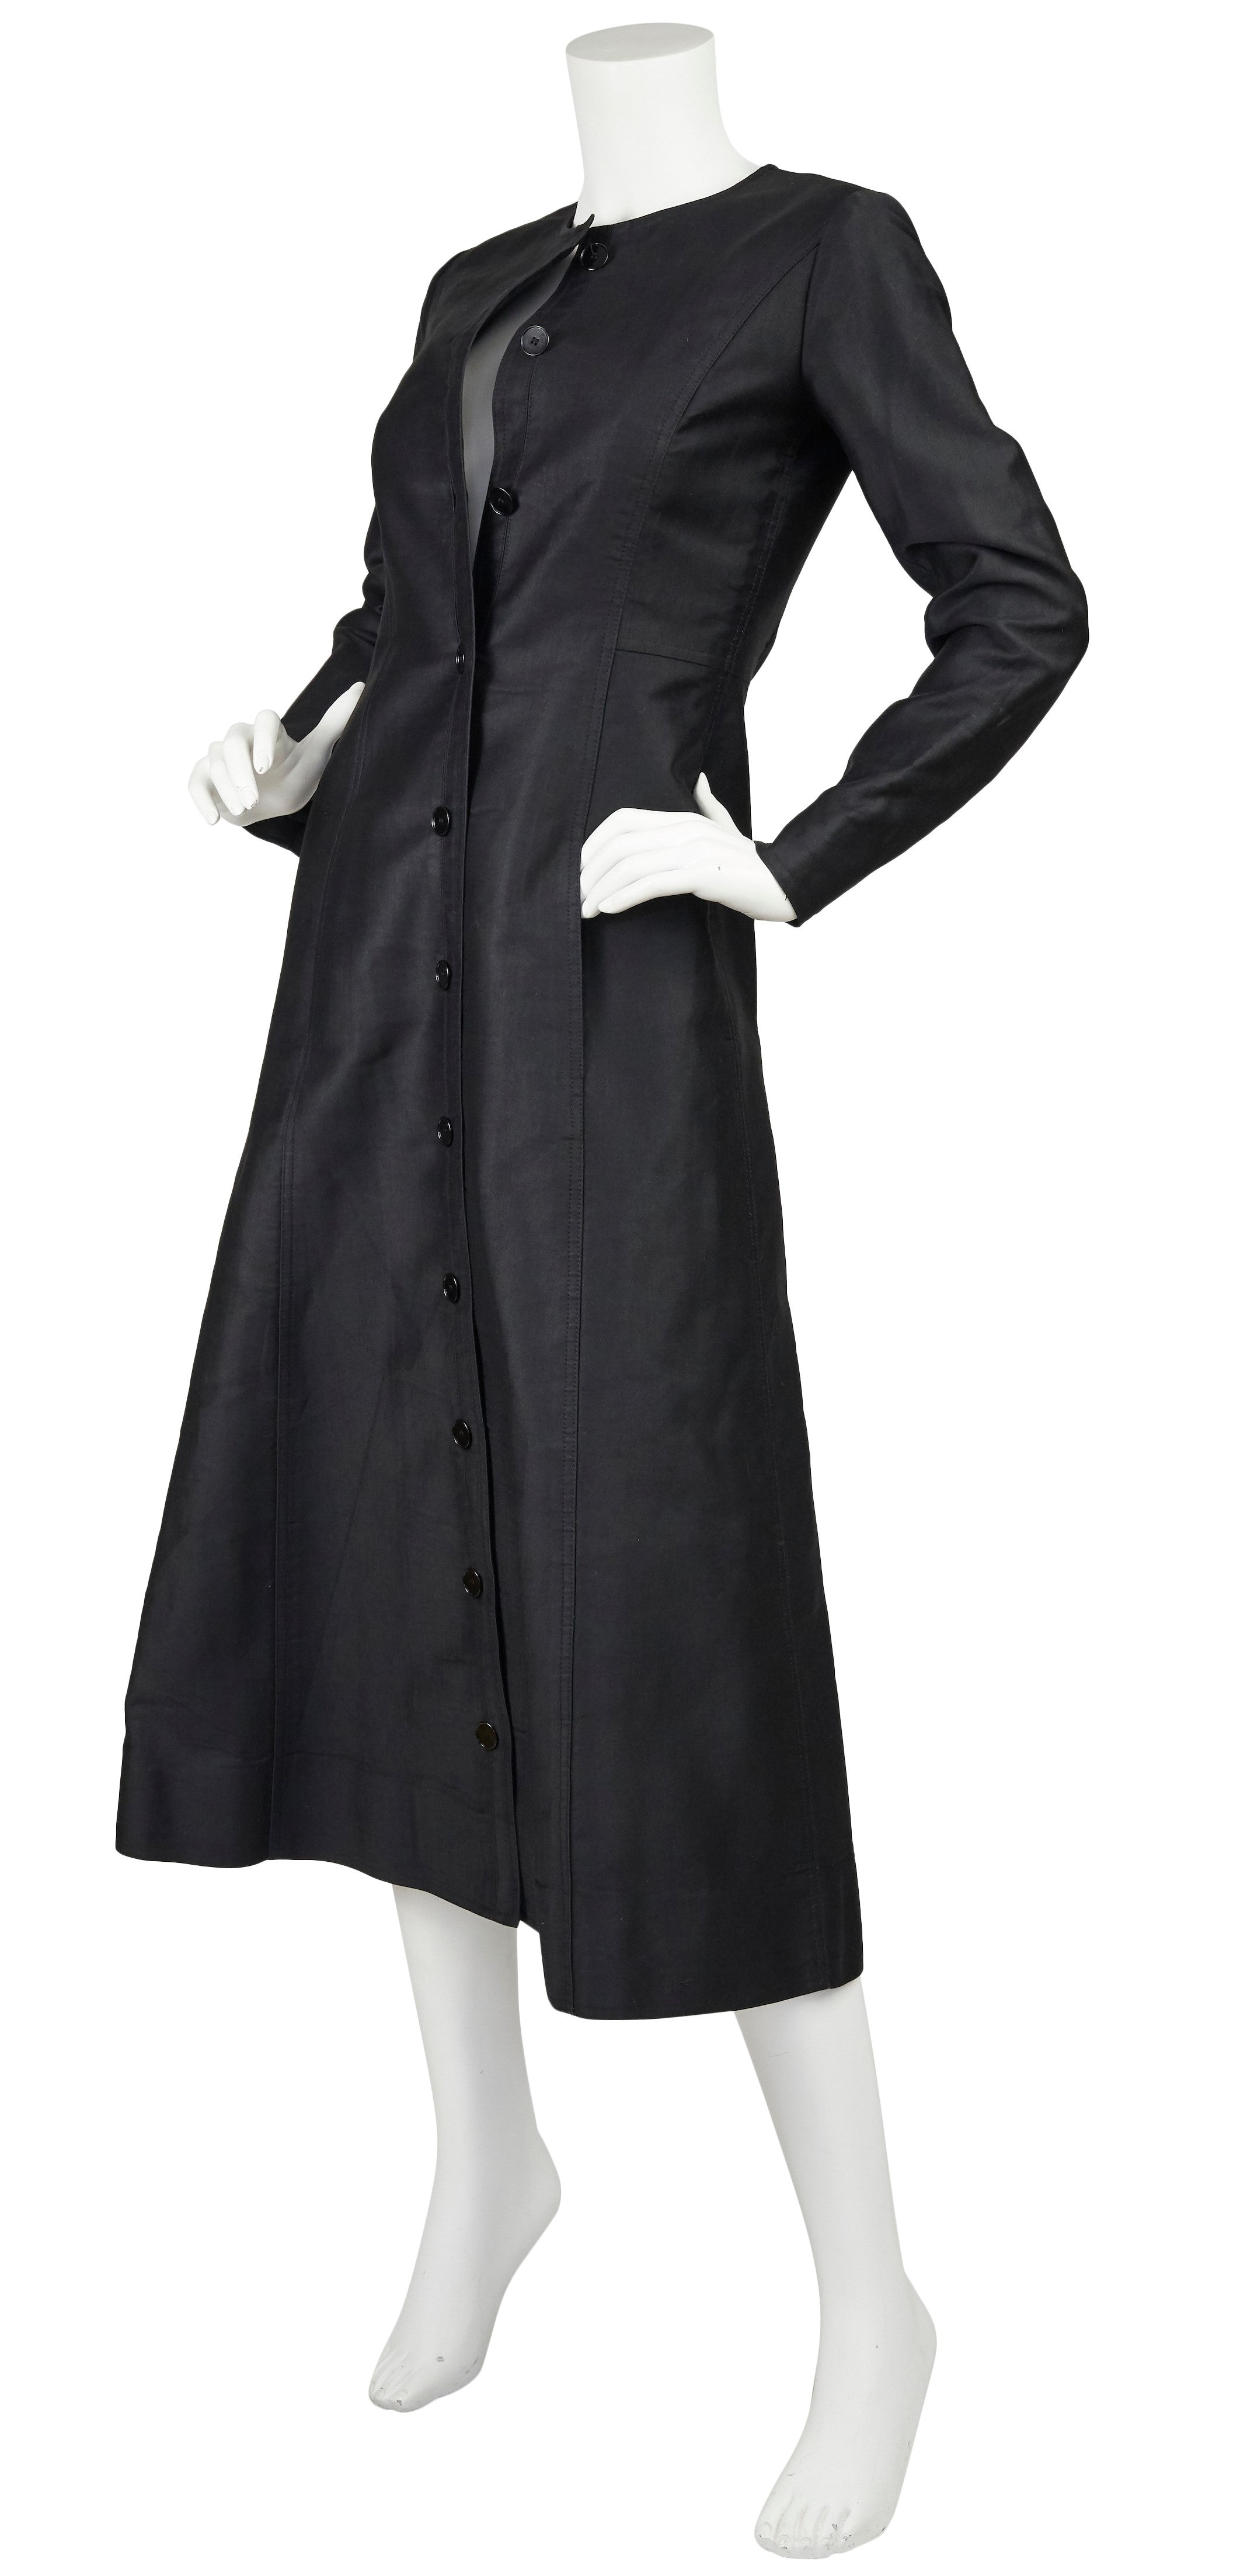 1970 Black Polished Cotton Button Midi Dress